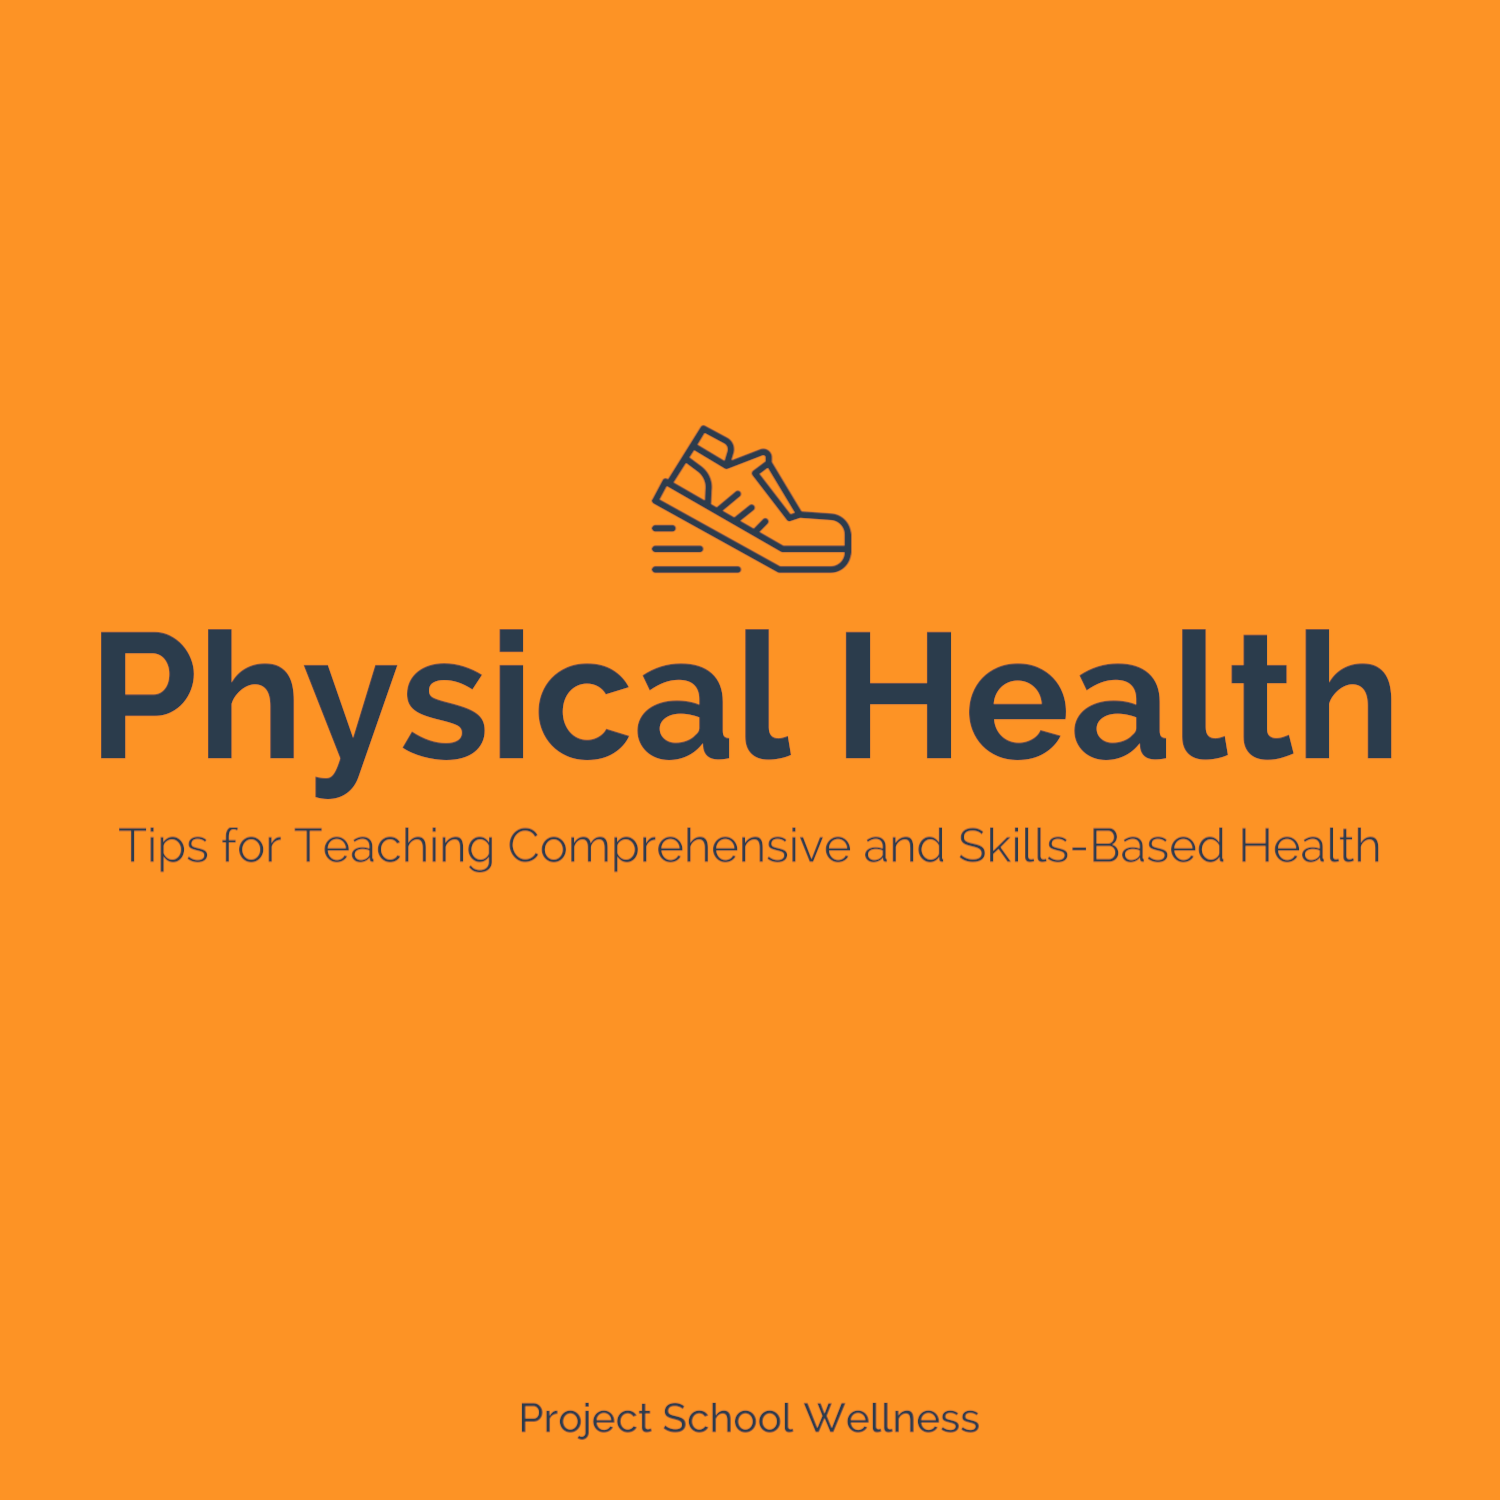 PSW Blog - Physical Health